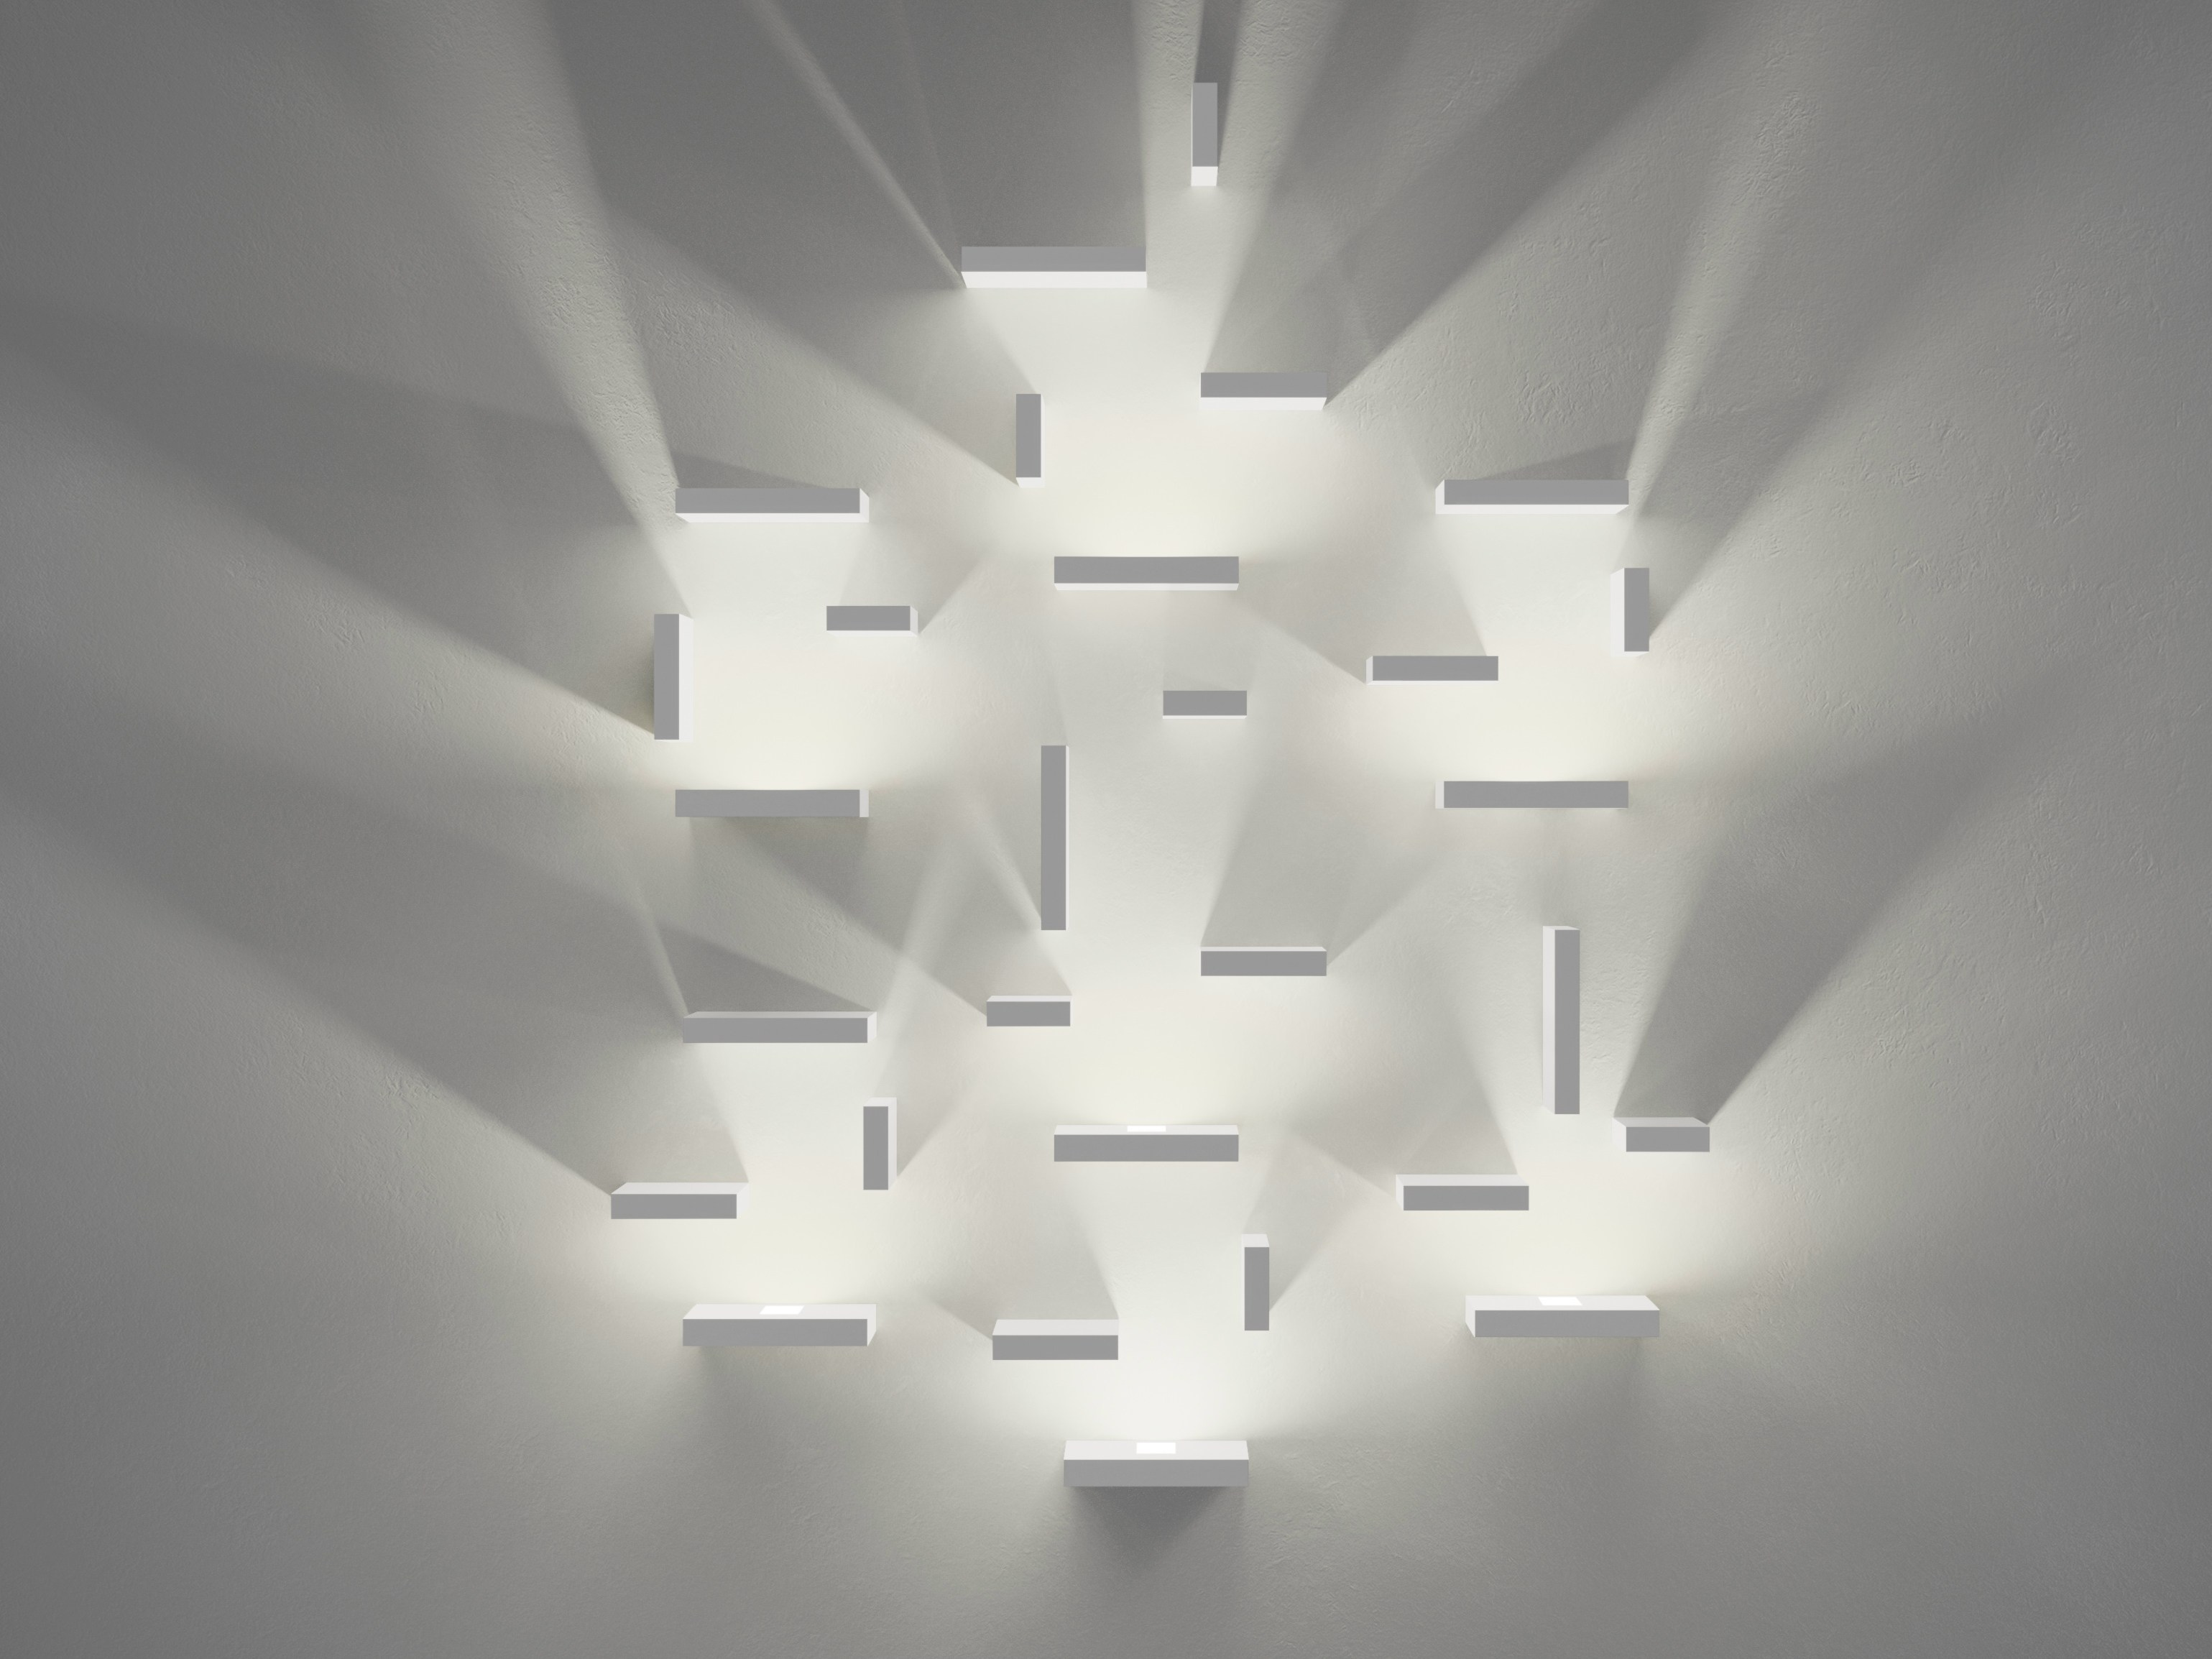 Applique murale set by vibia design josep llu s xucl - Grande applique murale design ...